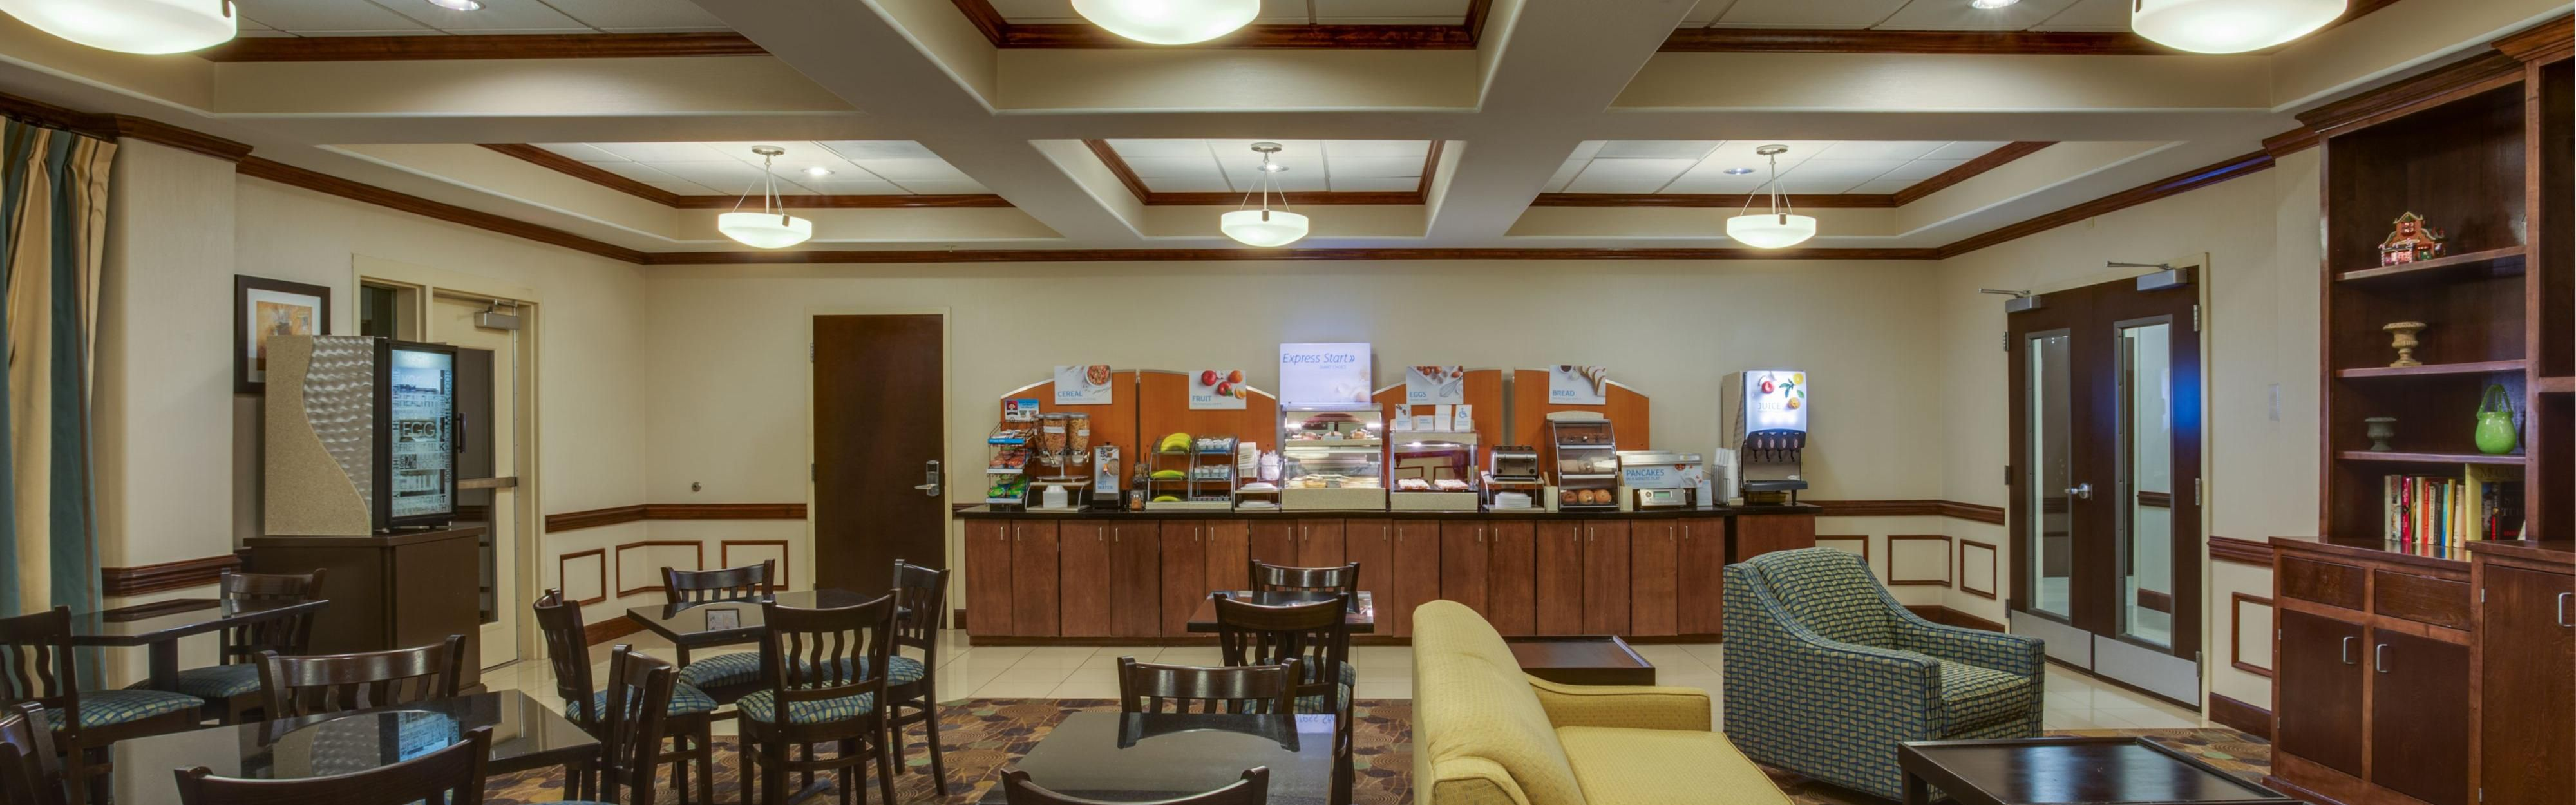 Holiday Inn Express & Suites Moultrie image 3